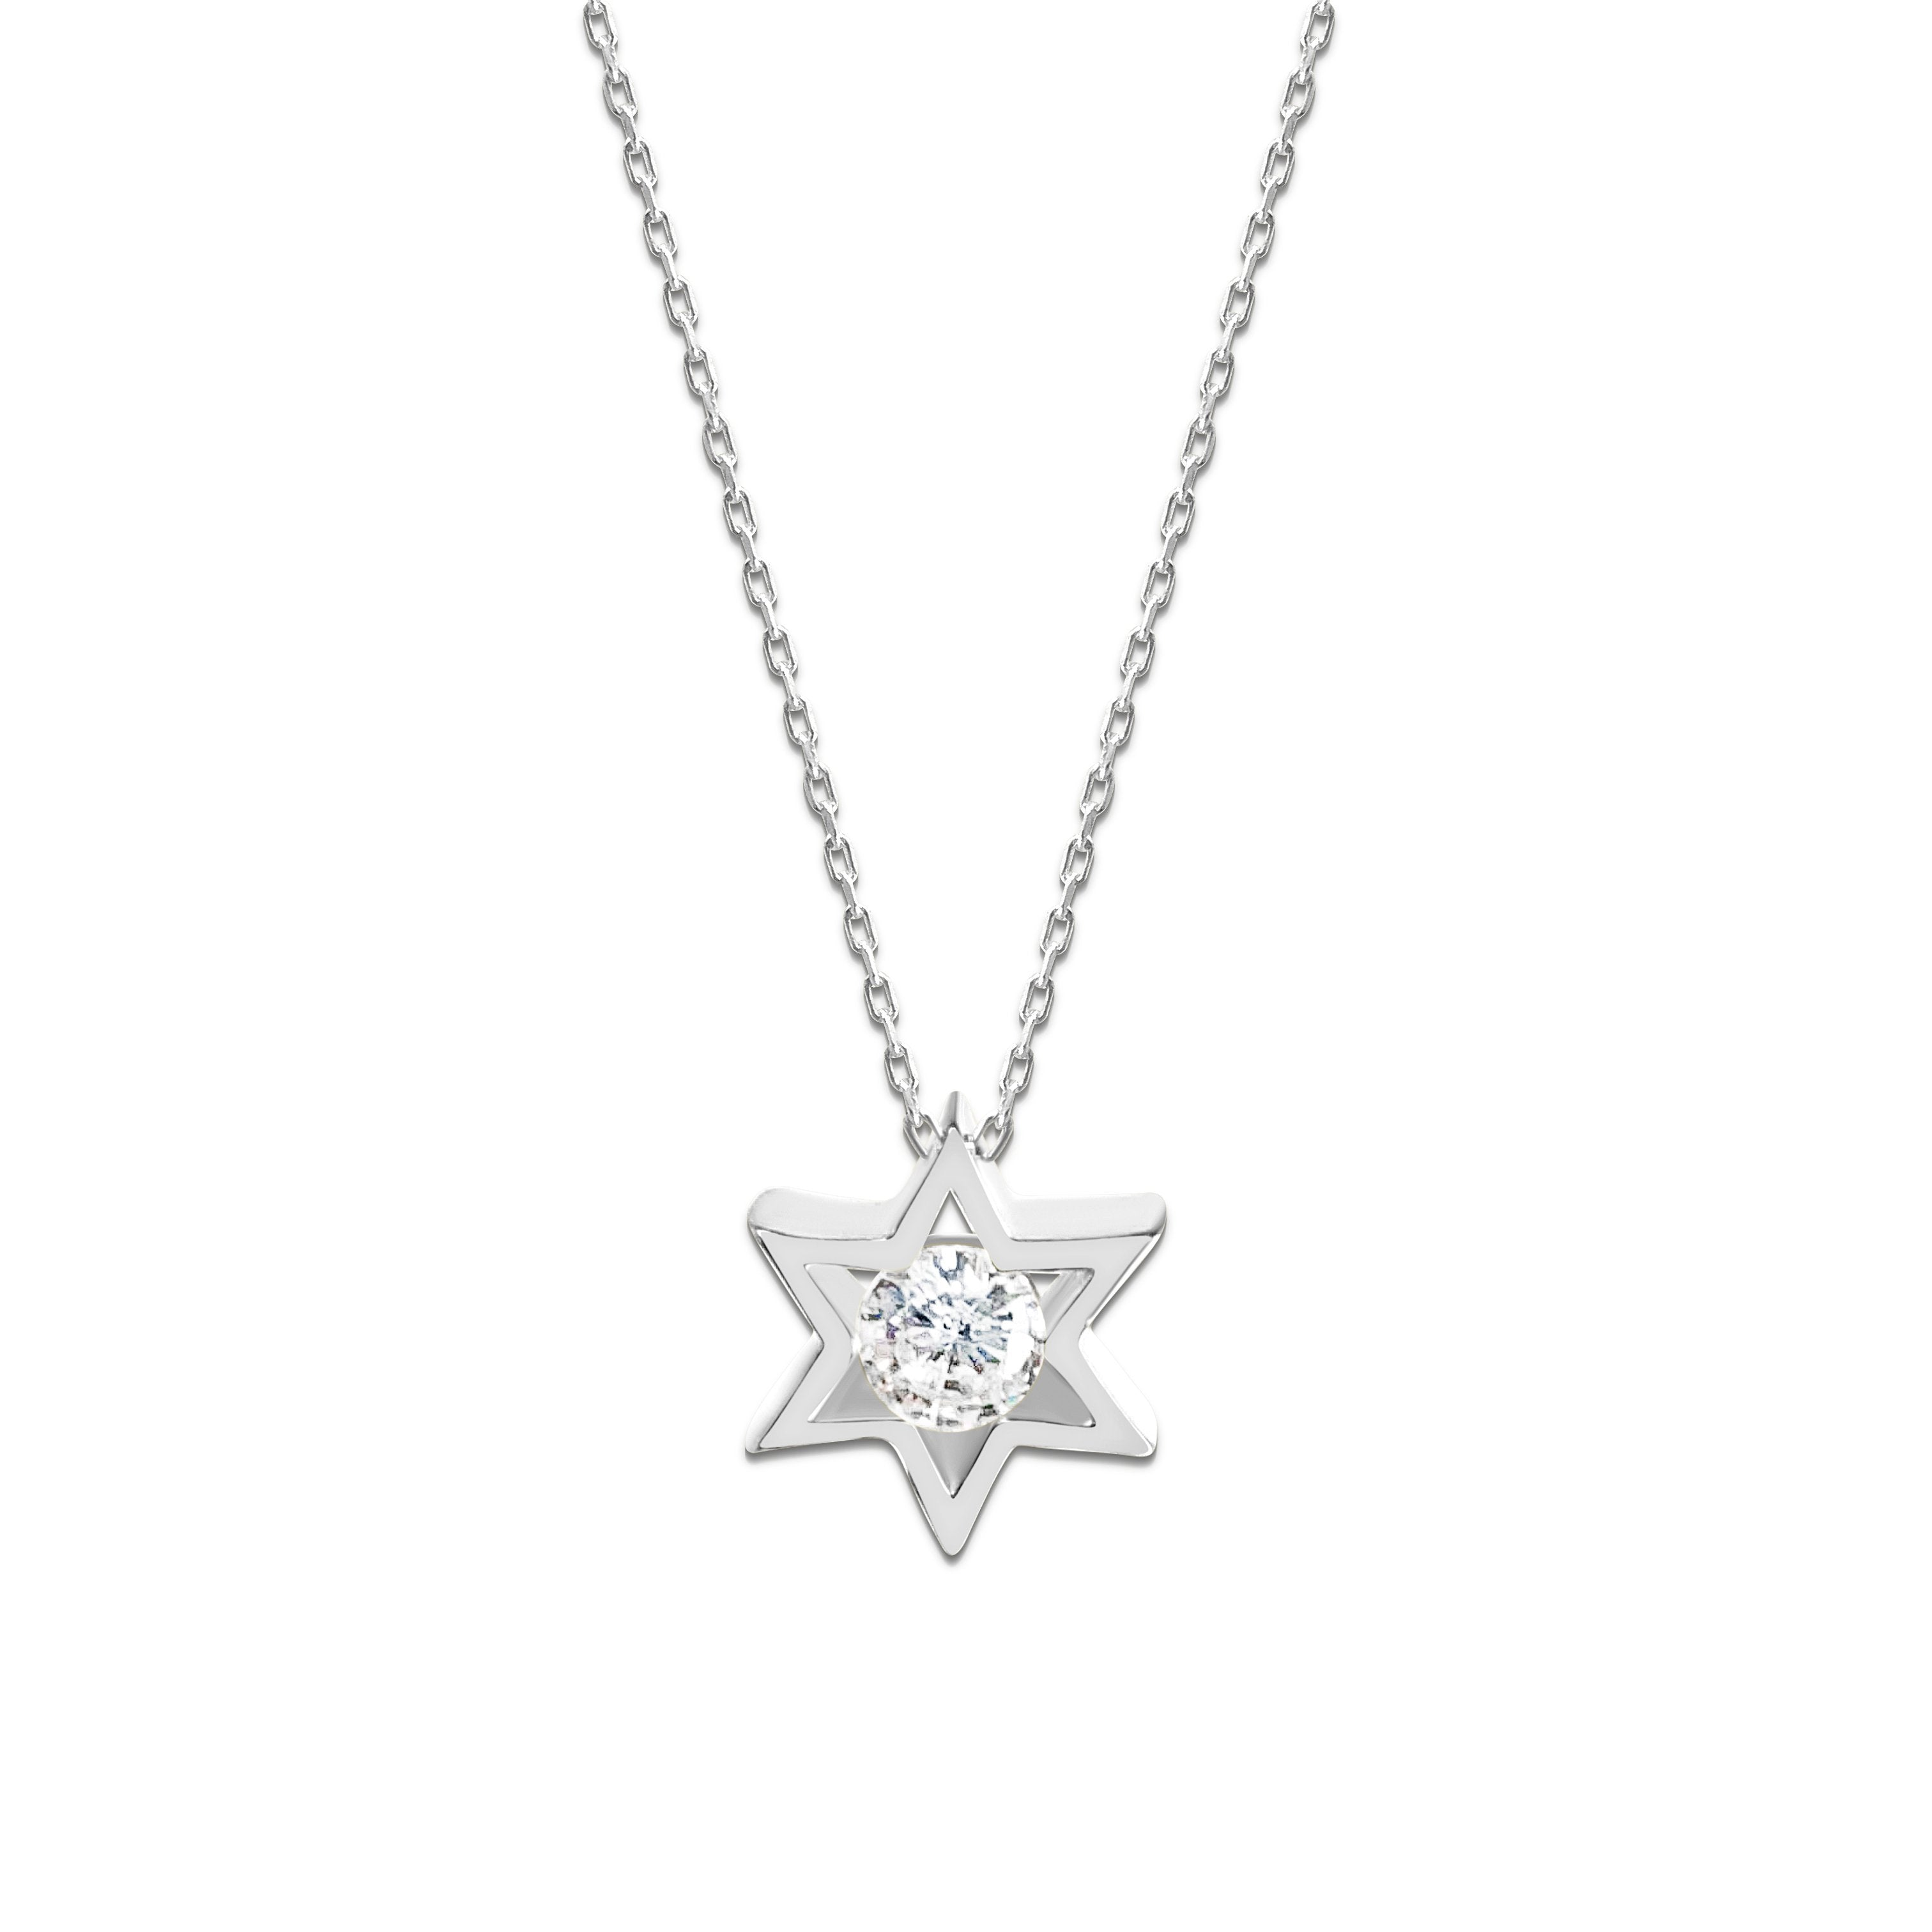 Jewish Star of David Charm With Center Stone